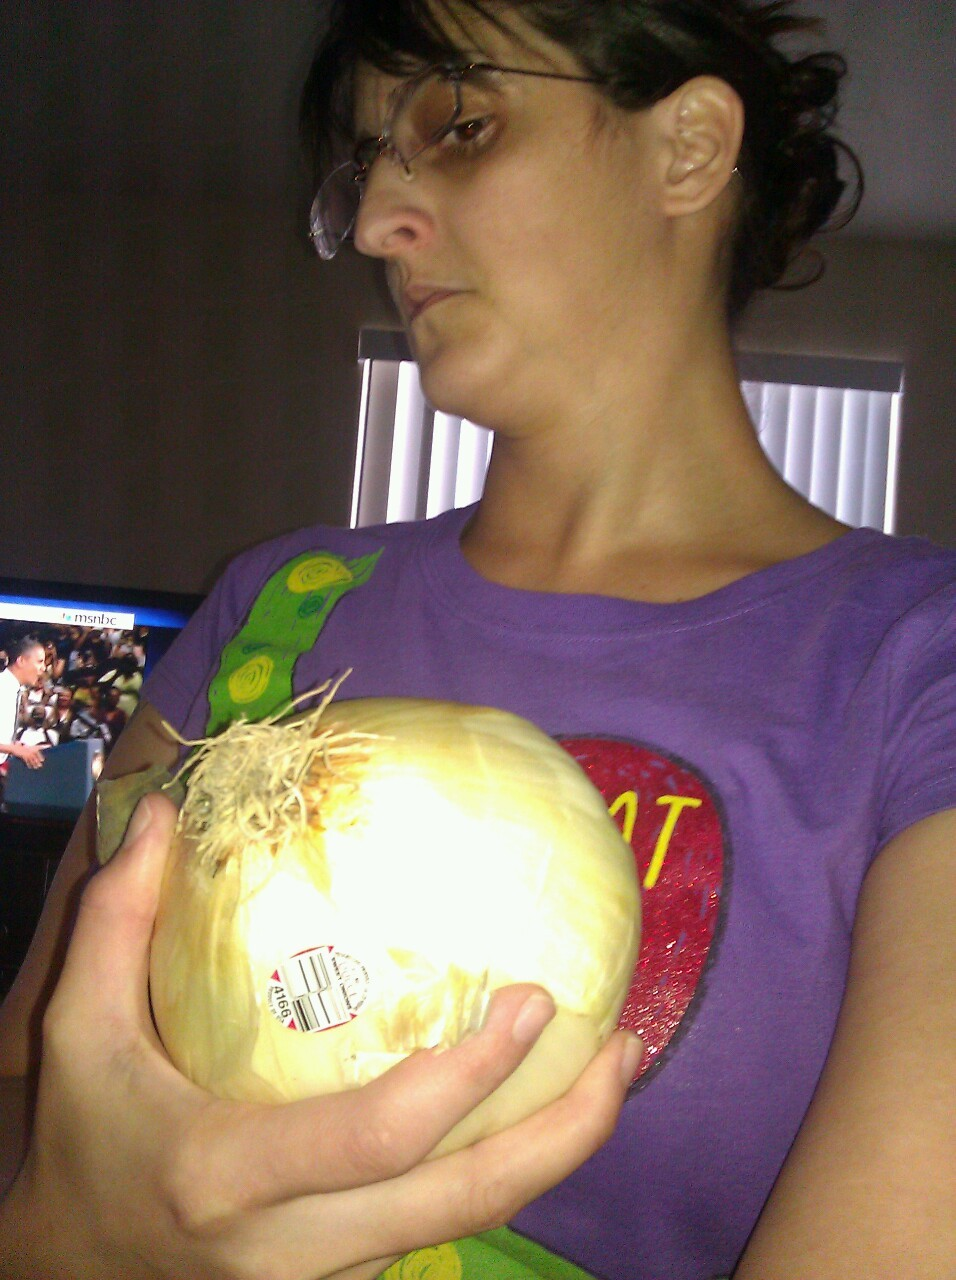 This onion is huge!